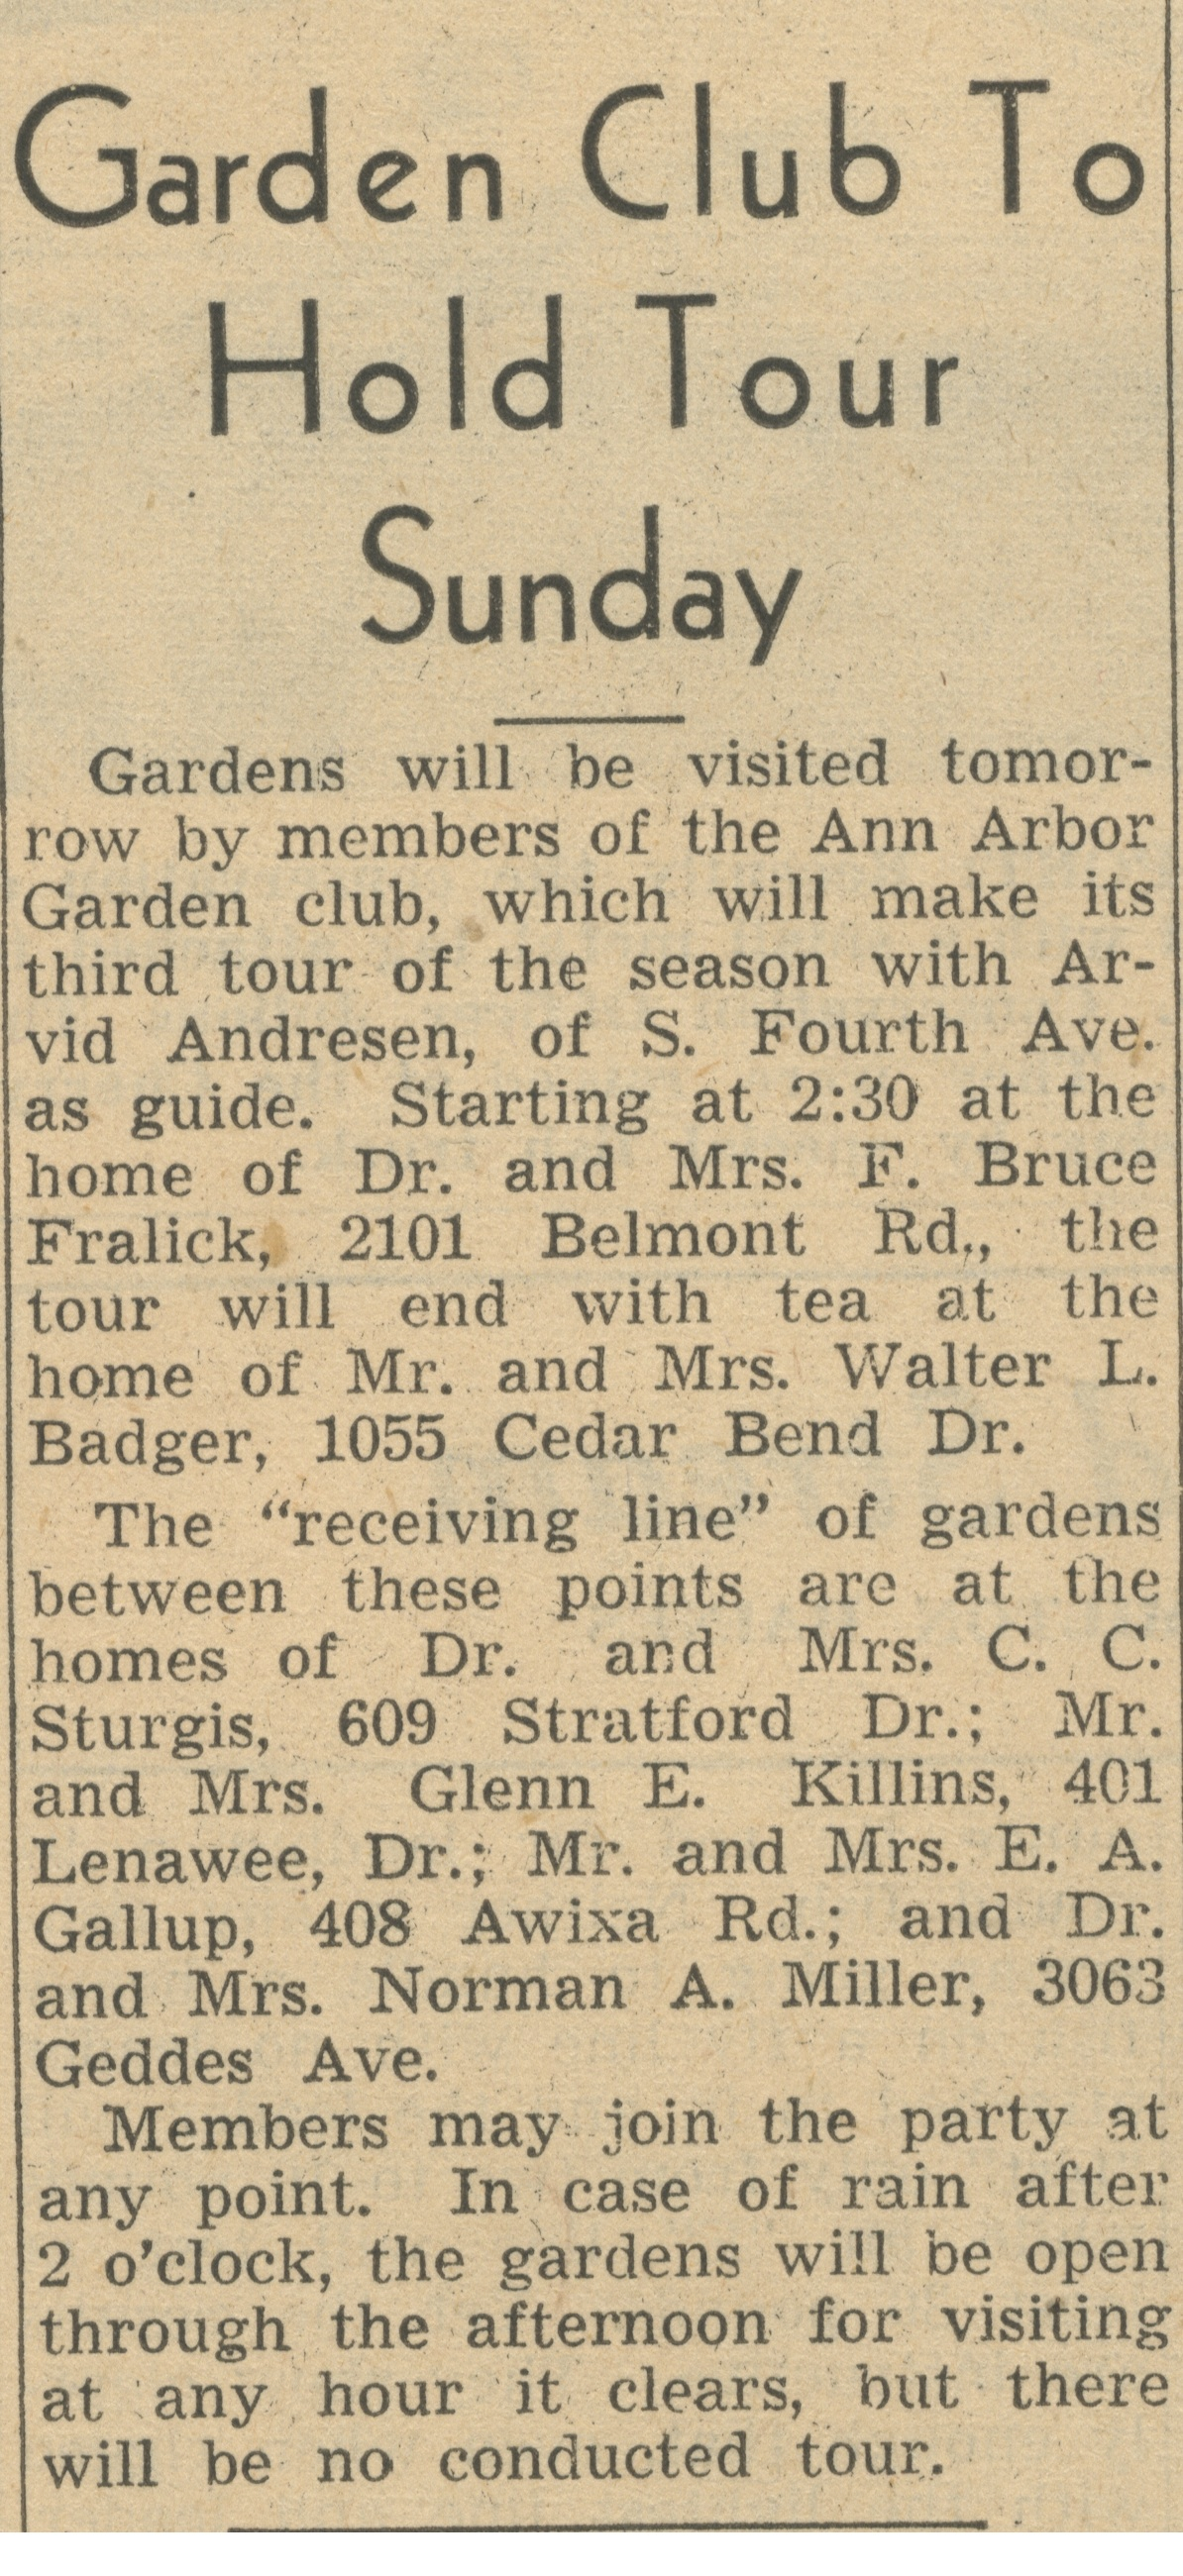 Garden Club To Hold Tour Sunday image